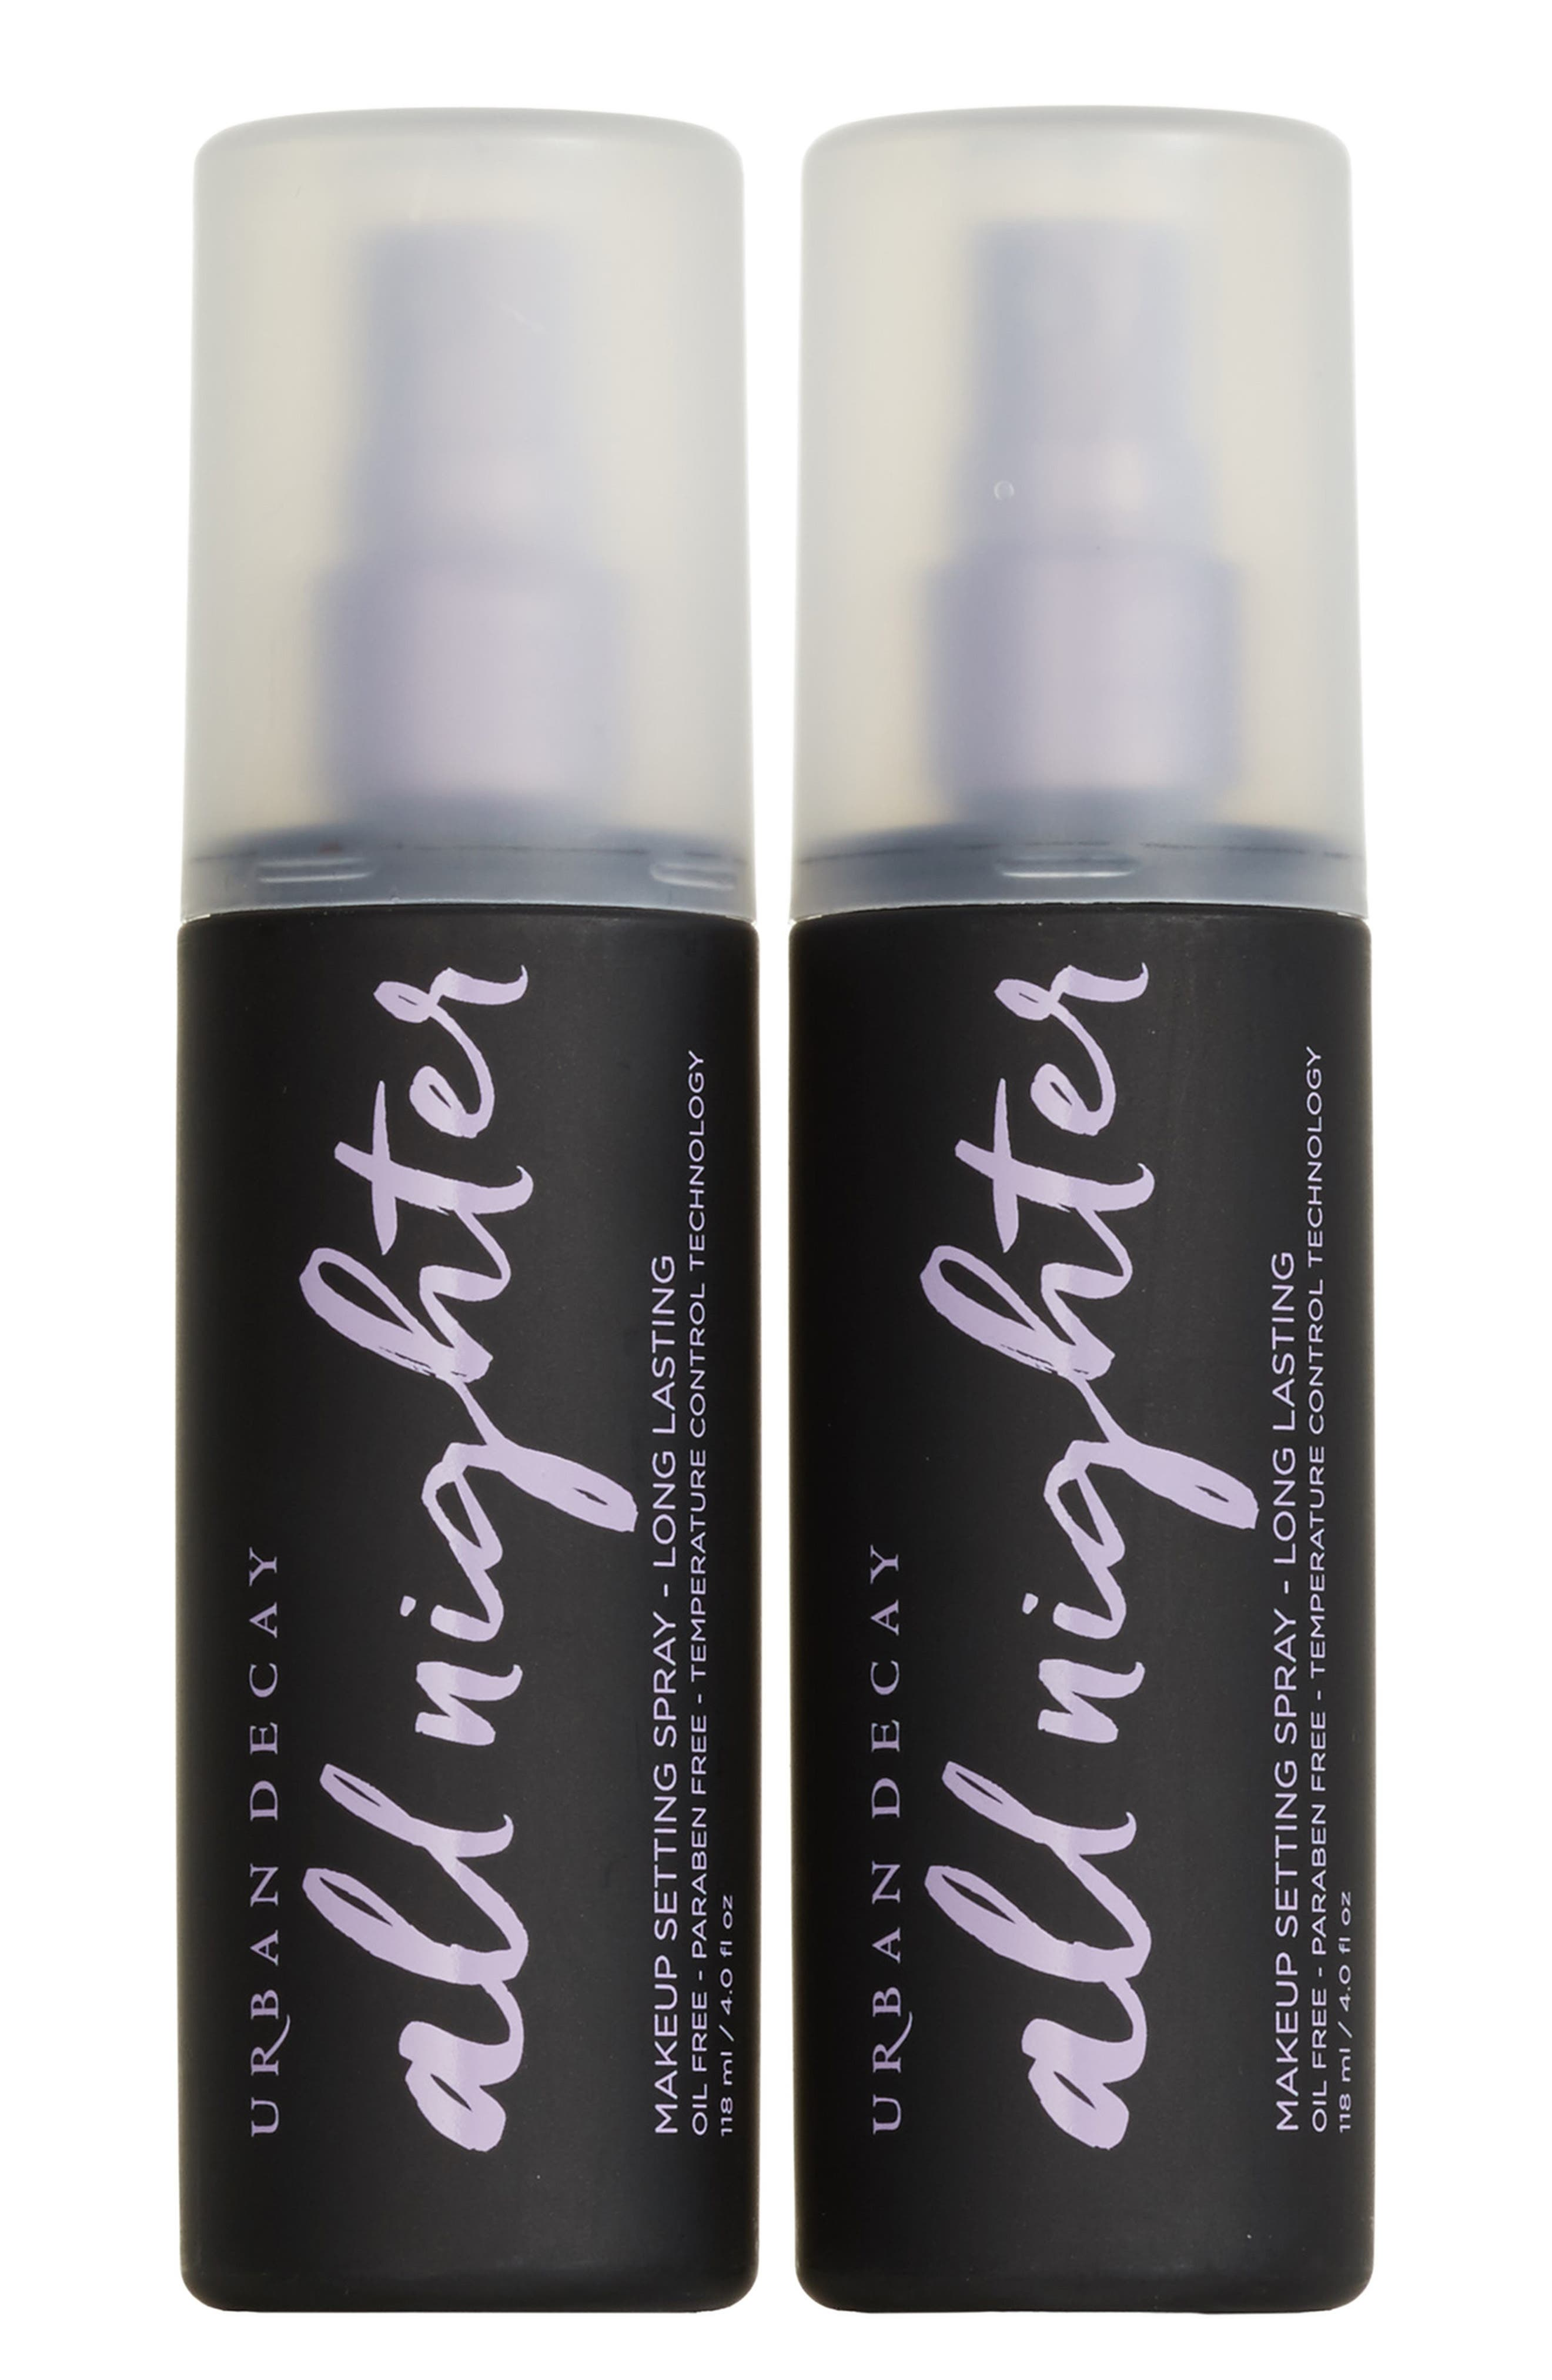 All Nighter Makeup Setting Spray Duo,                             Alternate thumbnail 2, color,                             No Color